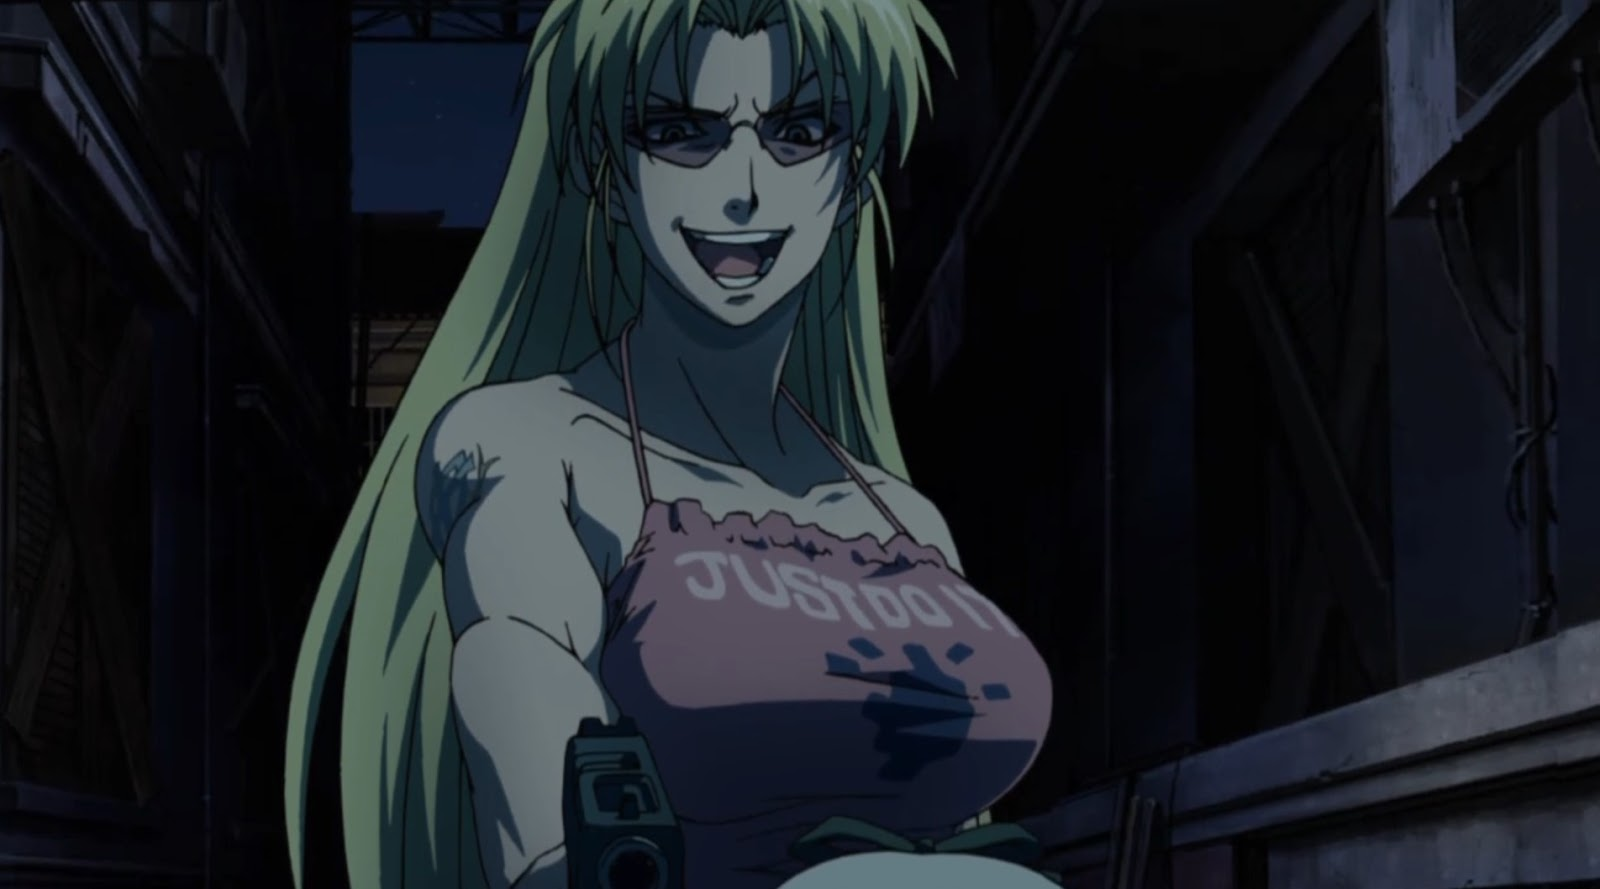 Black Lagoon: The Second Barrage – Episódio 02, Black Lagoon: The Second Barrage – Episódio 02, Black Lagoon: The Second Barrage Legendado ,Assistir